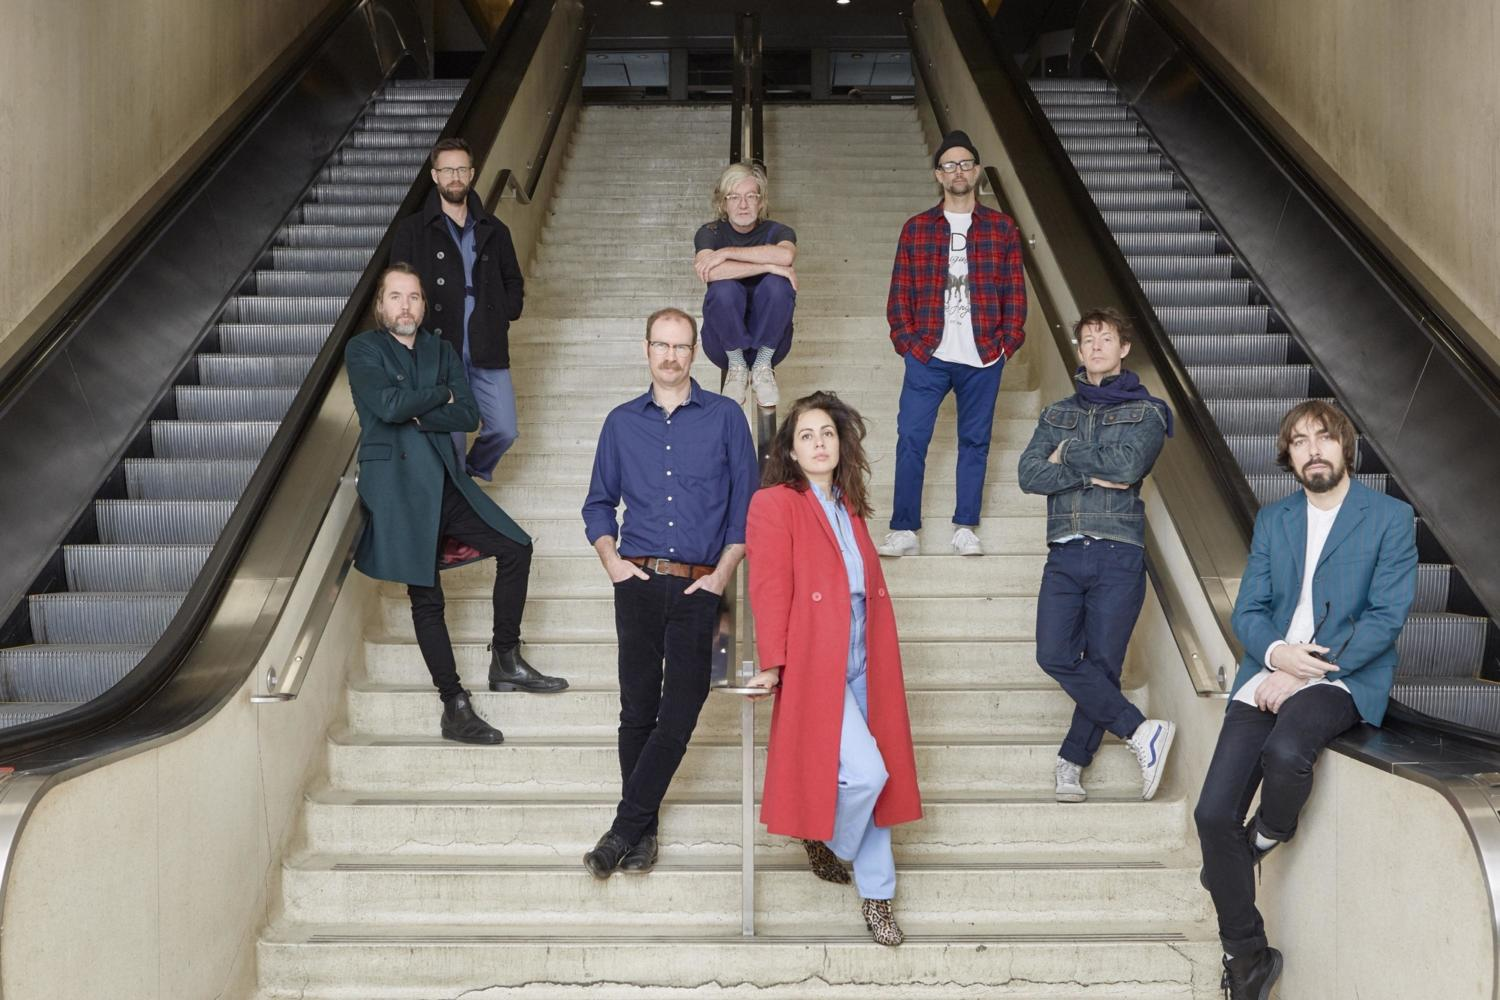 Broken Social Scene to release 'Let's Try The After - Vol 1' EP